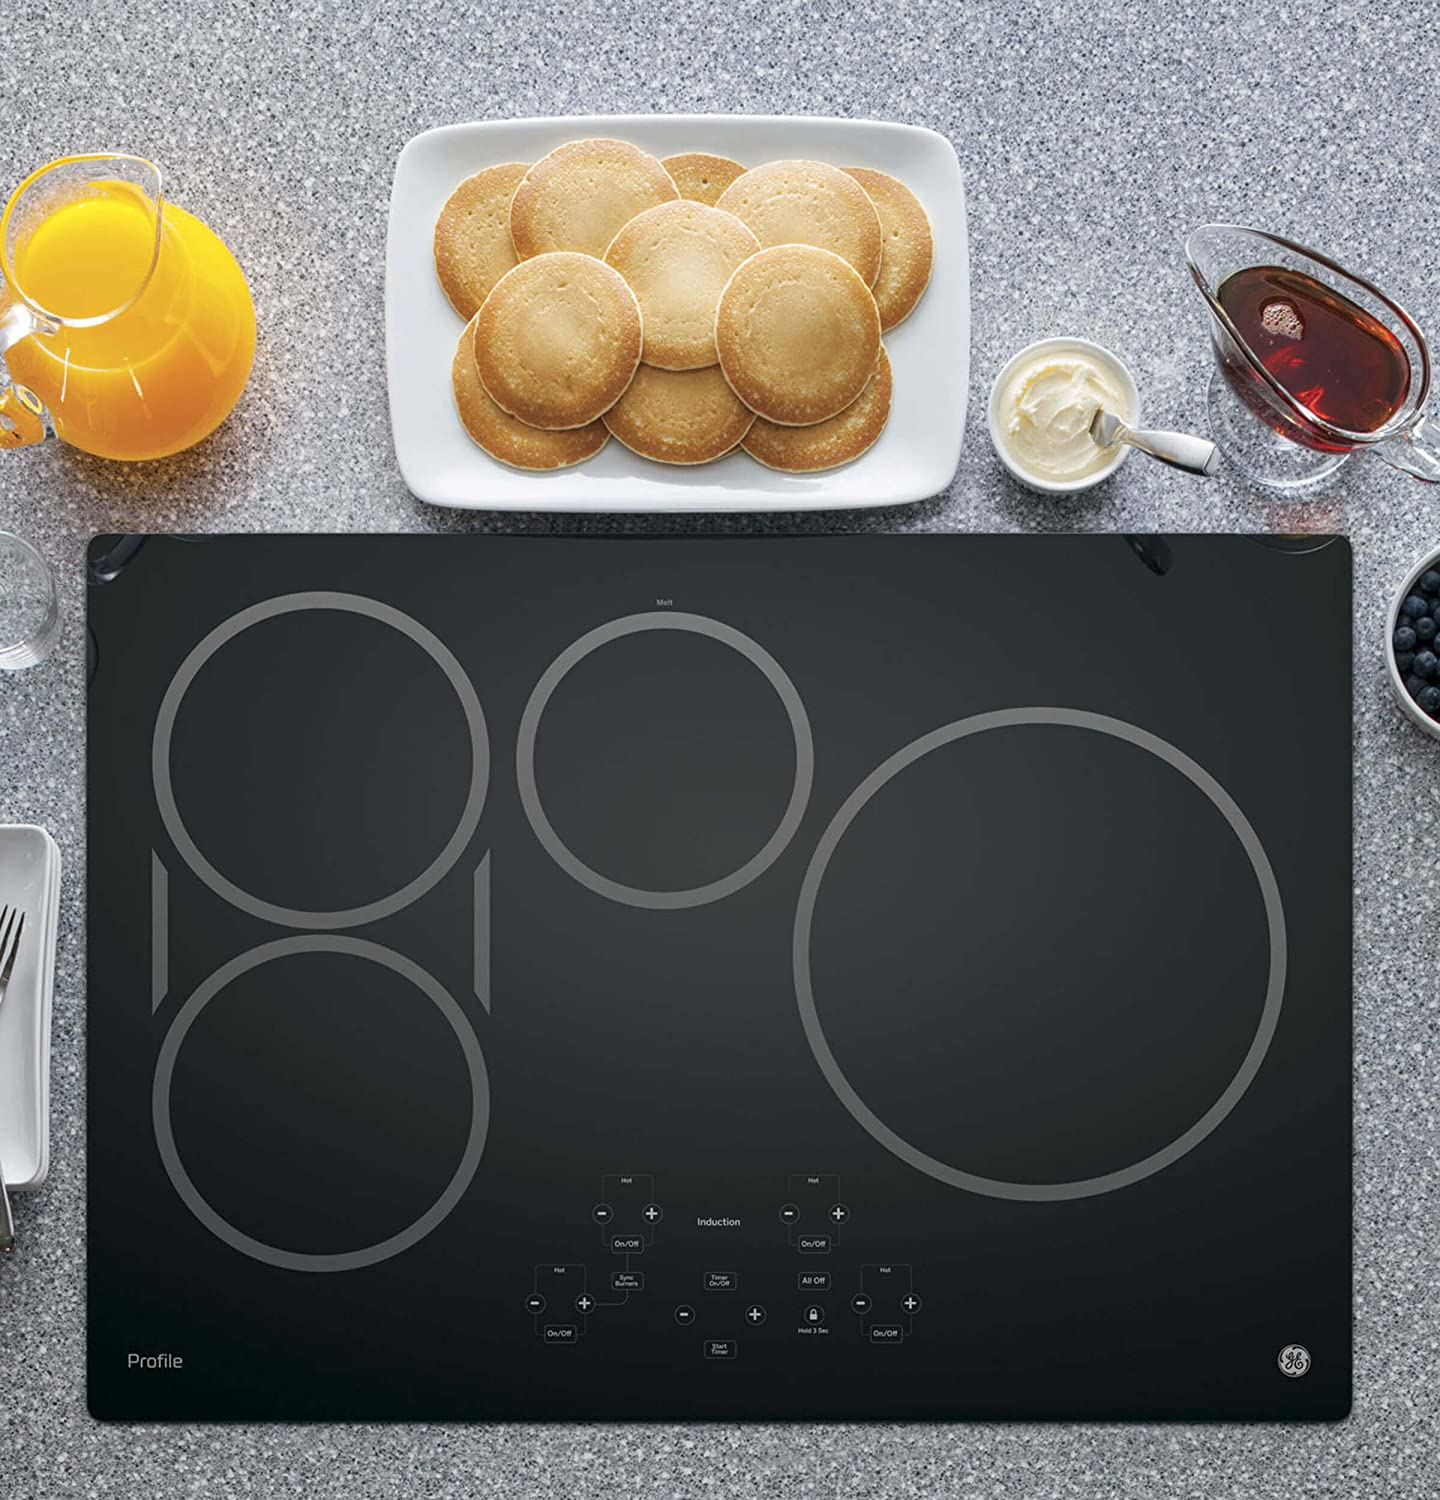 GE PHP9030DJBB Profile 30 Black Electric Induction Cooktop